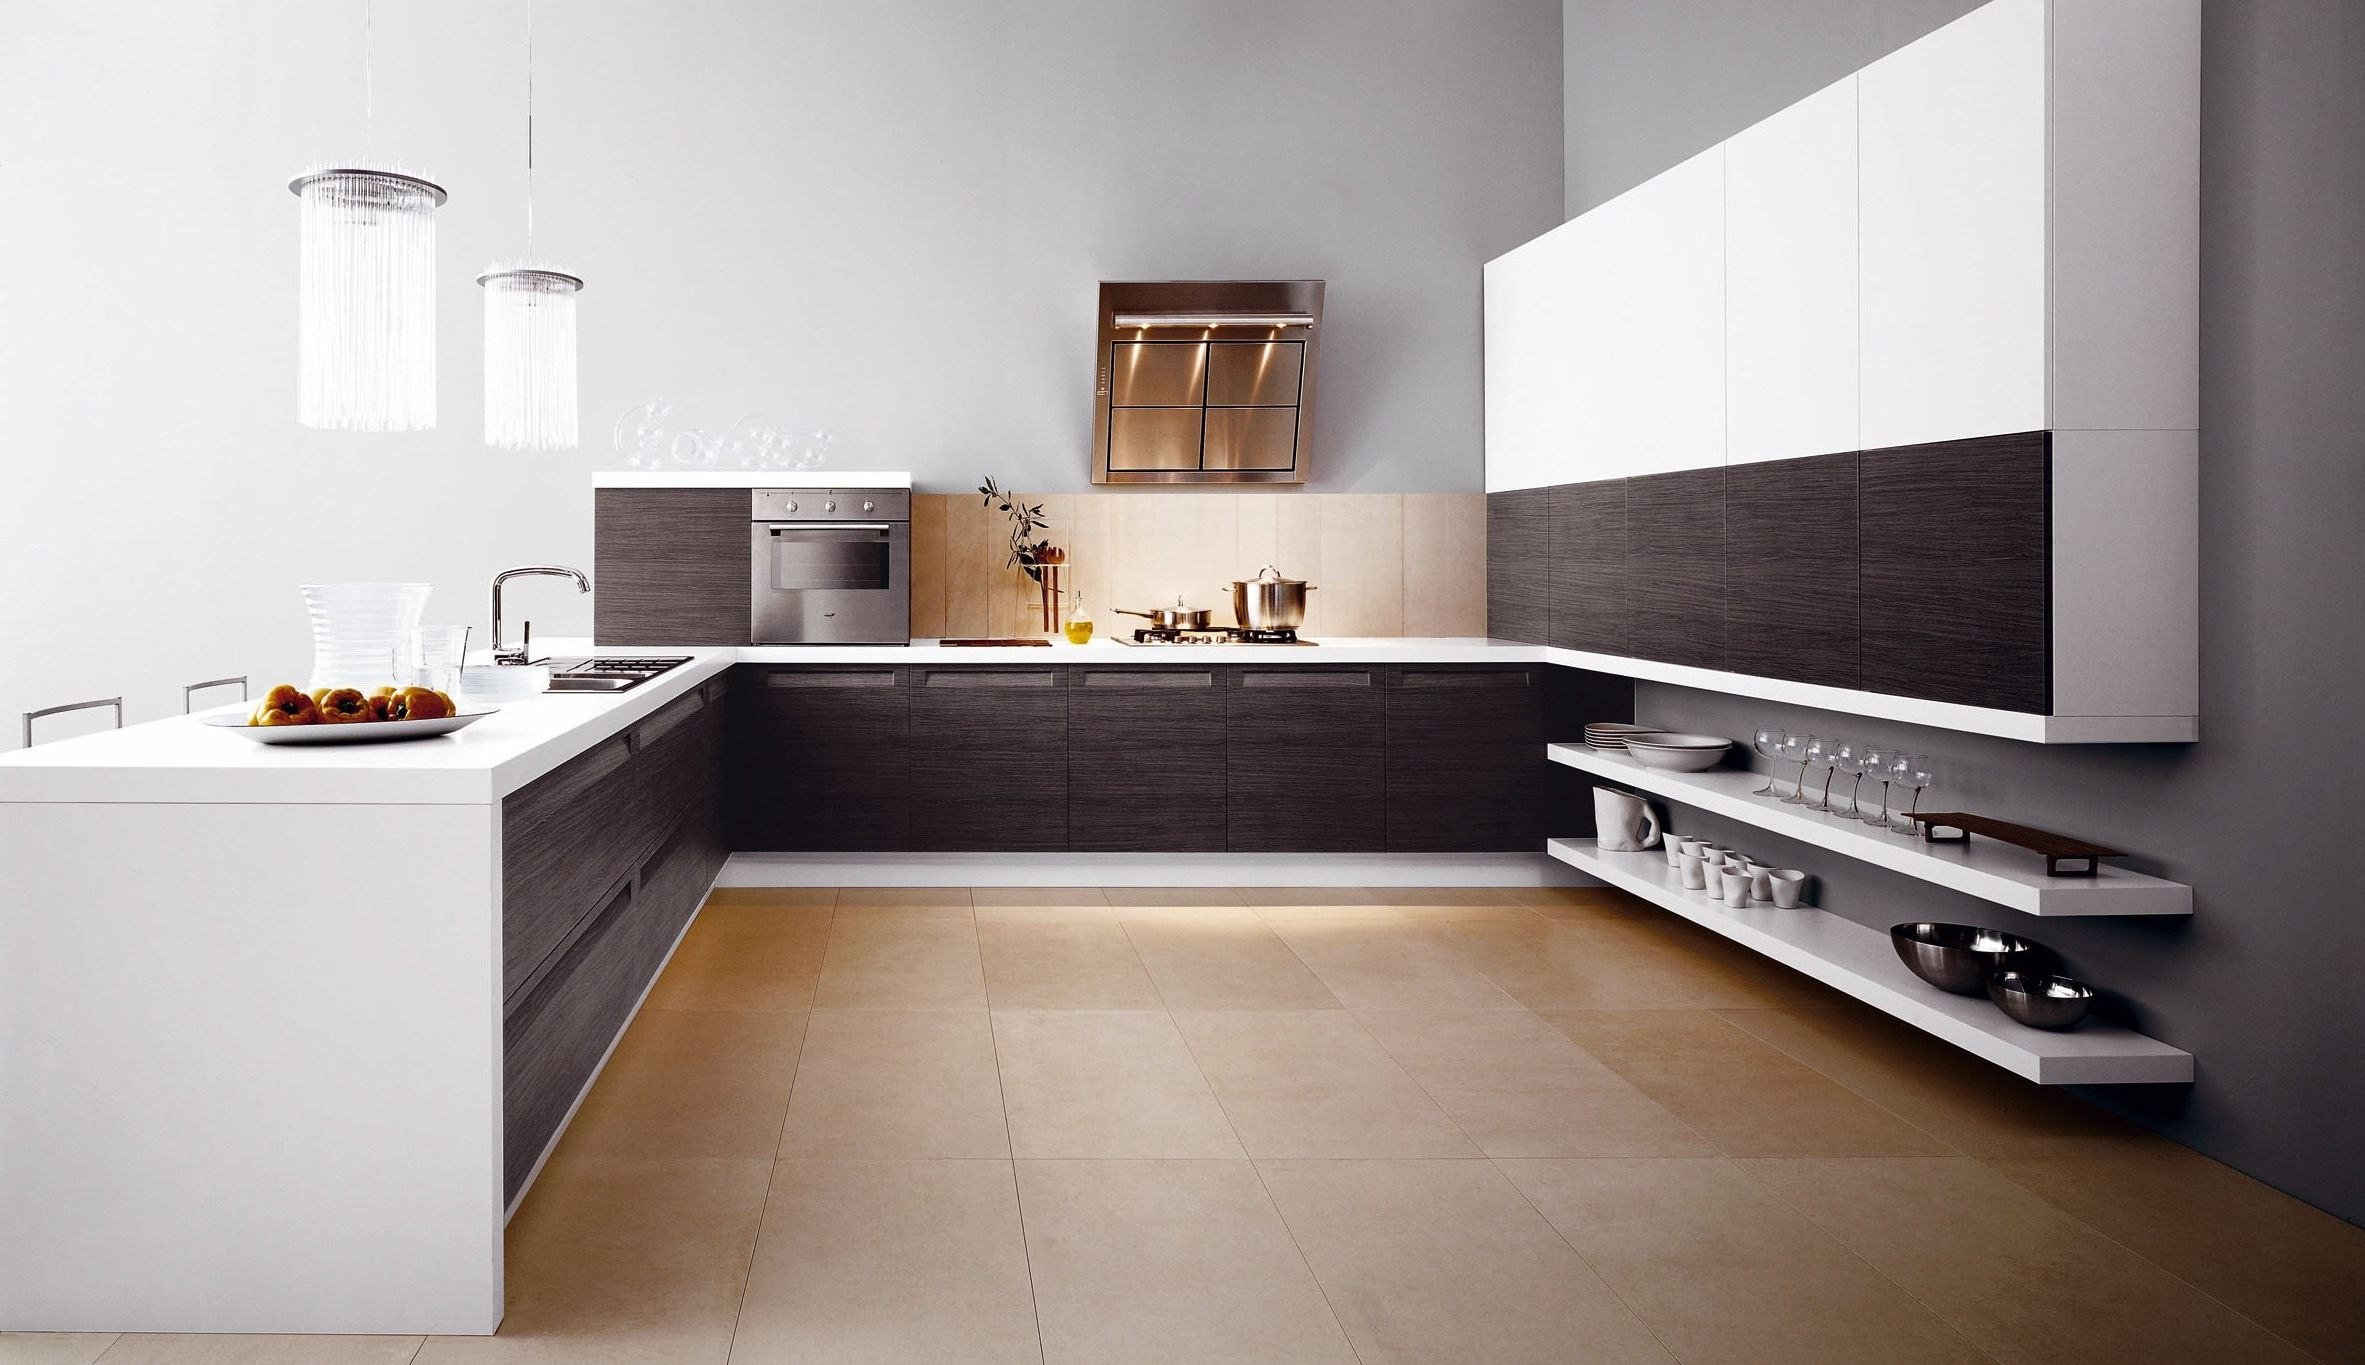 Italian kitchen design ideas midcityeast for Kichan dizain